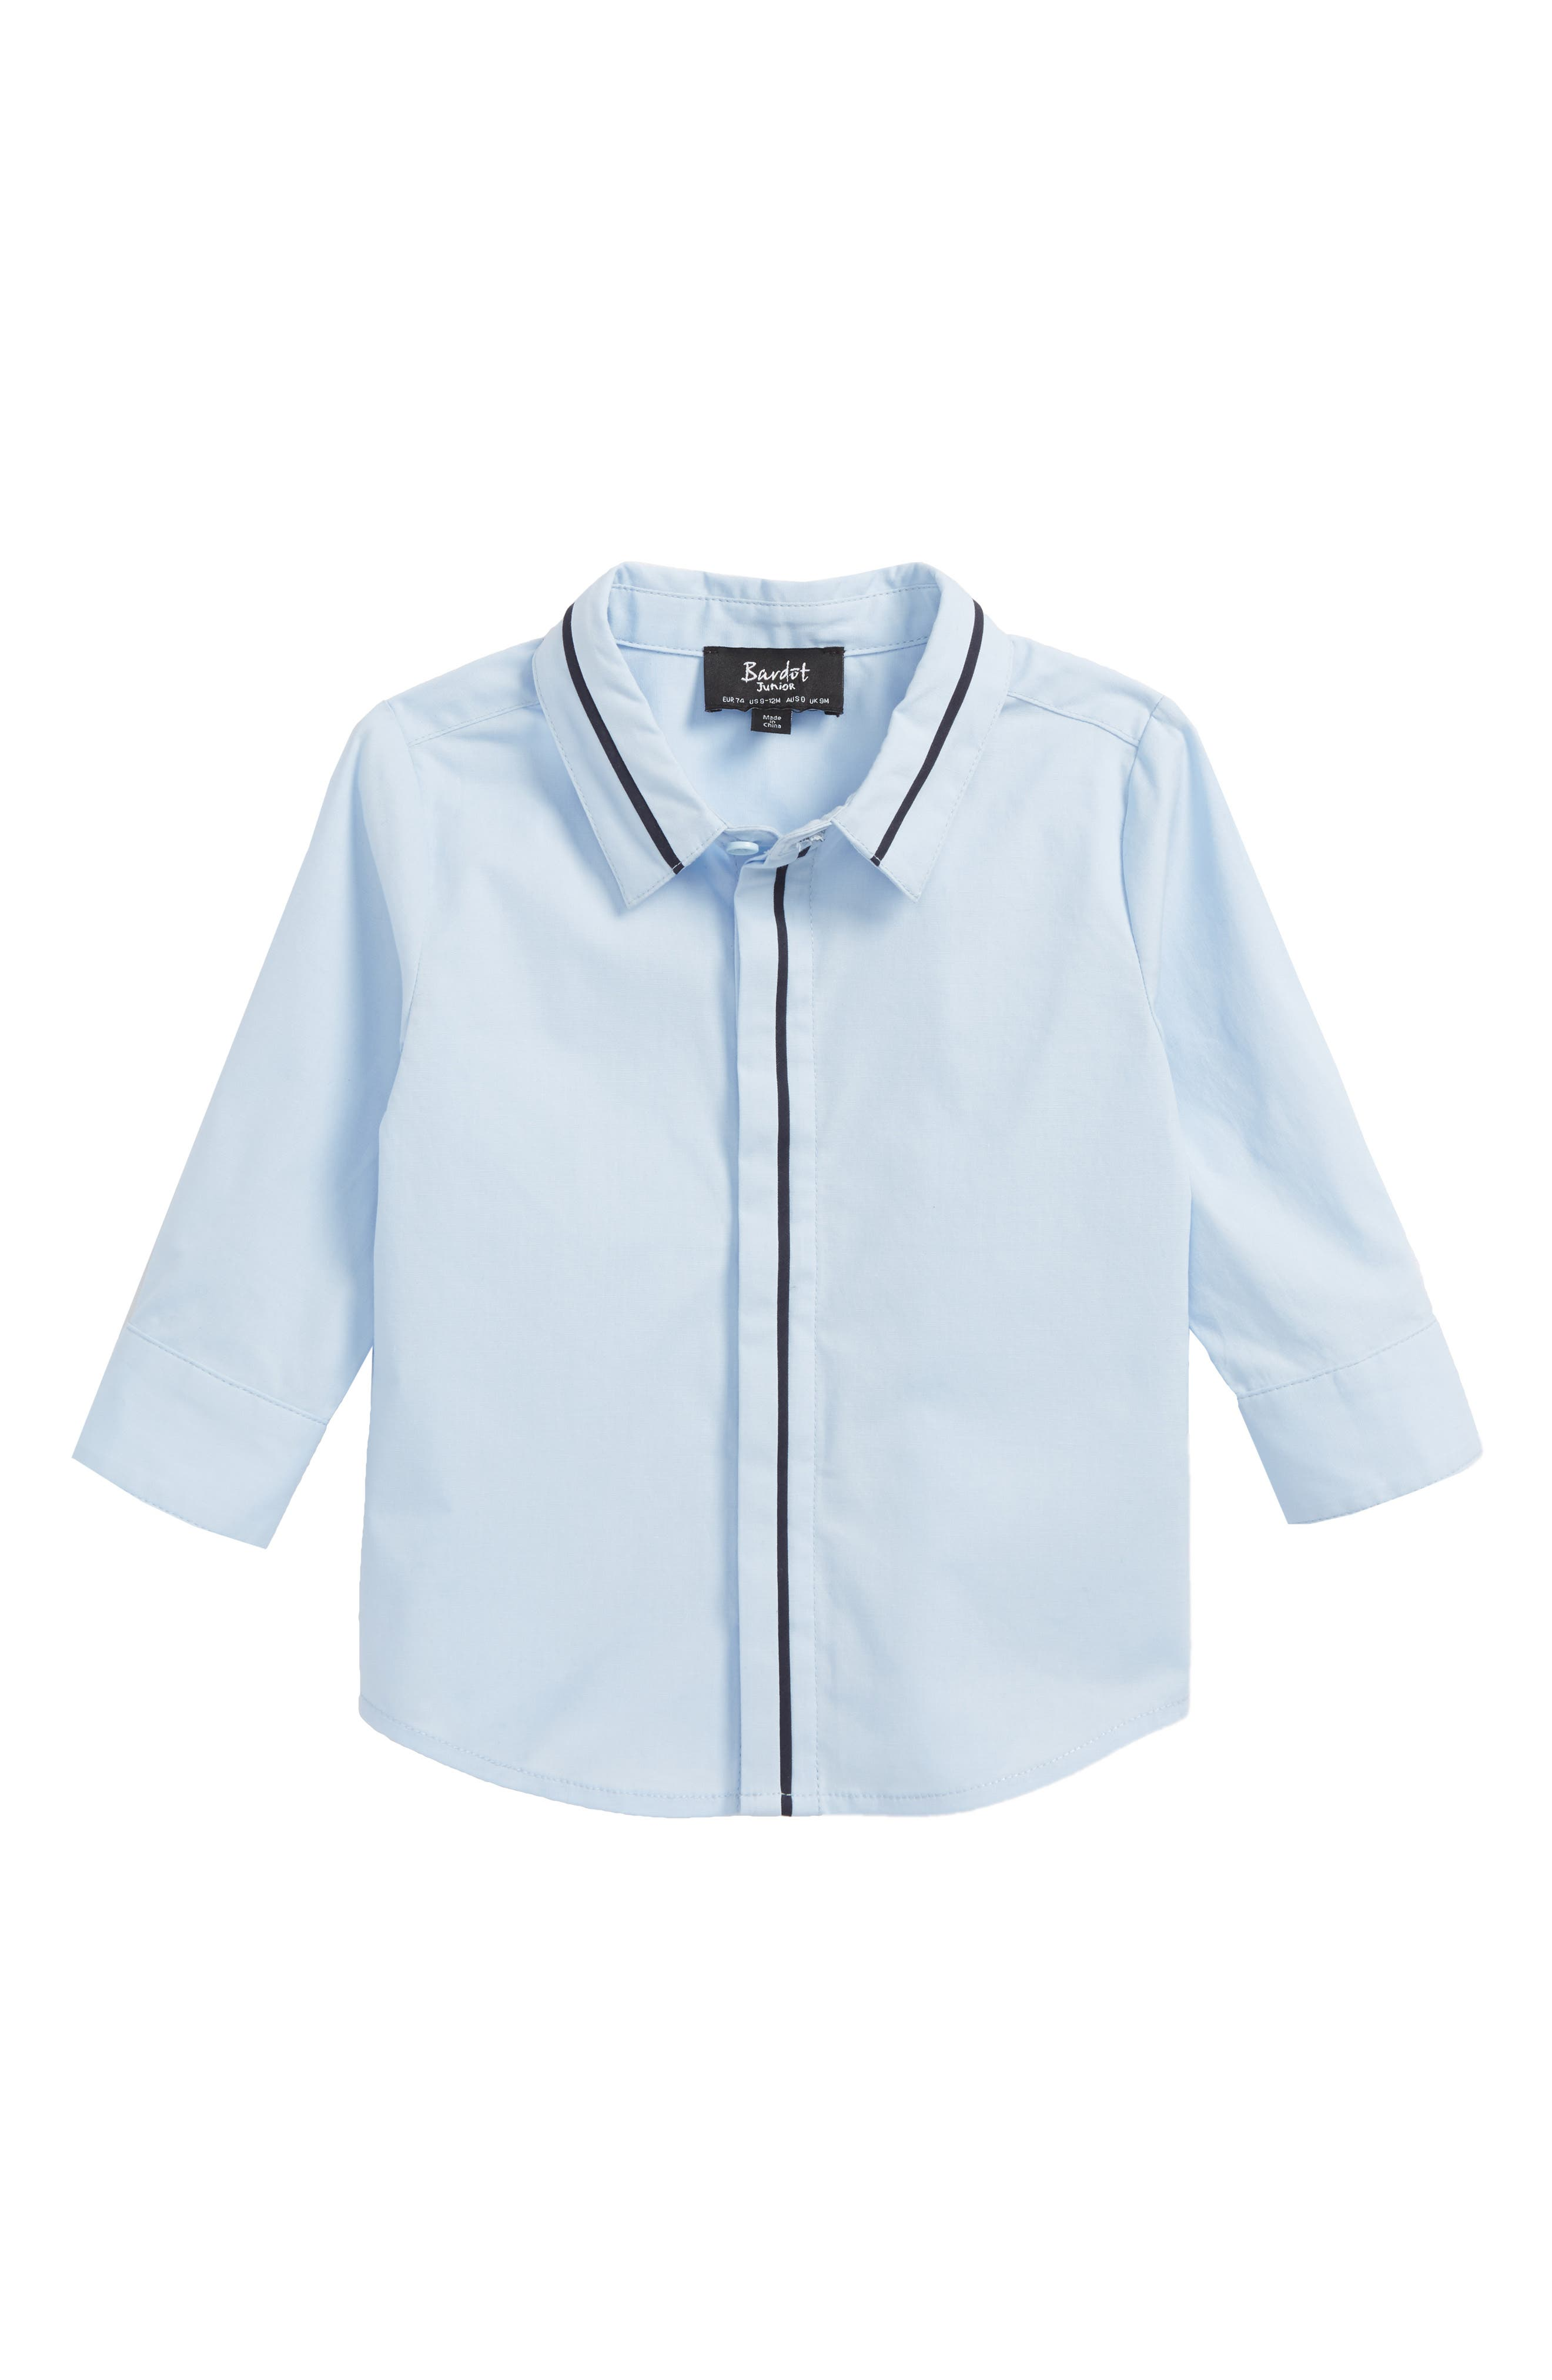 Linear Shirt,                             Main thumbnail 1, color,                             Pale Blue